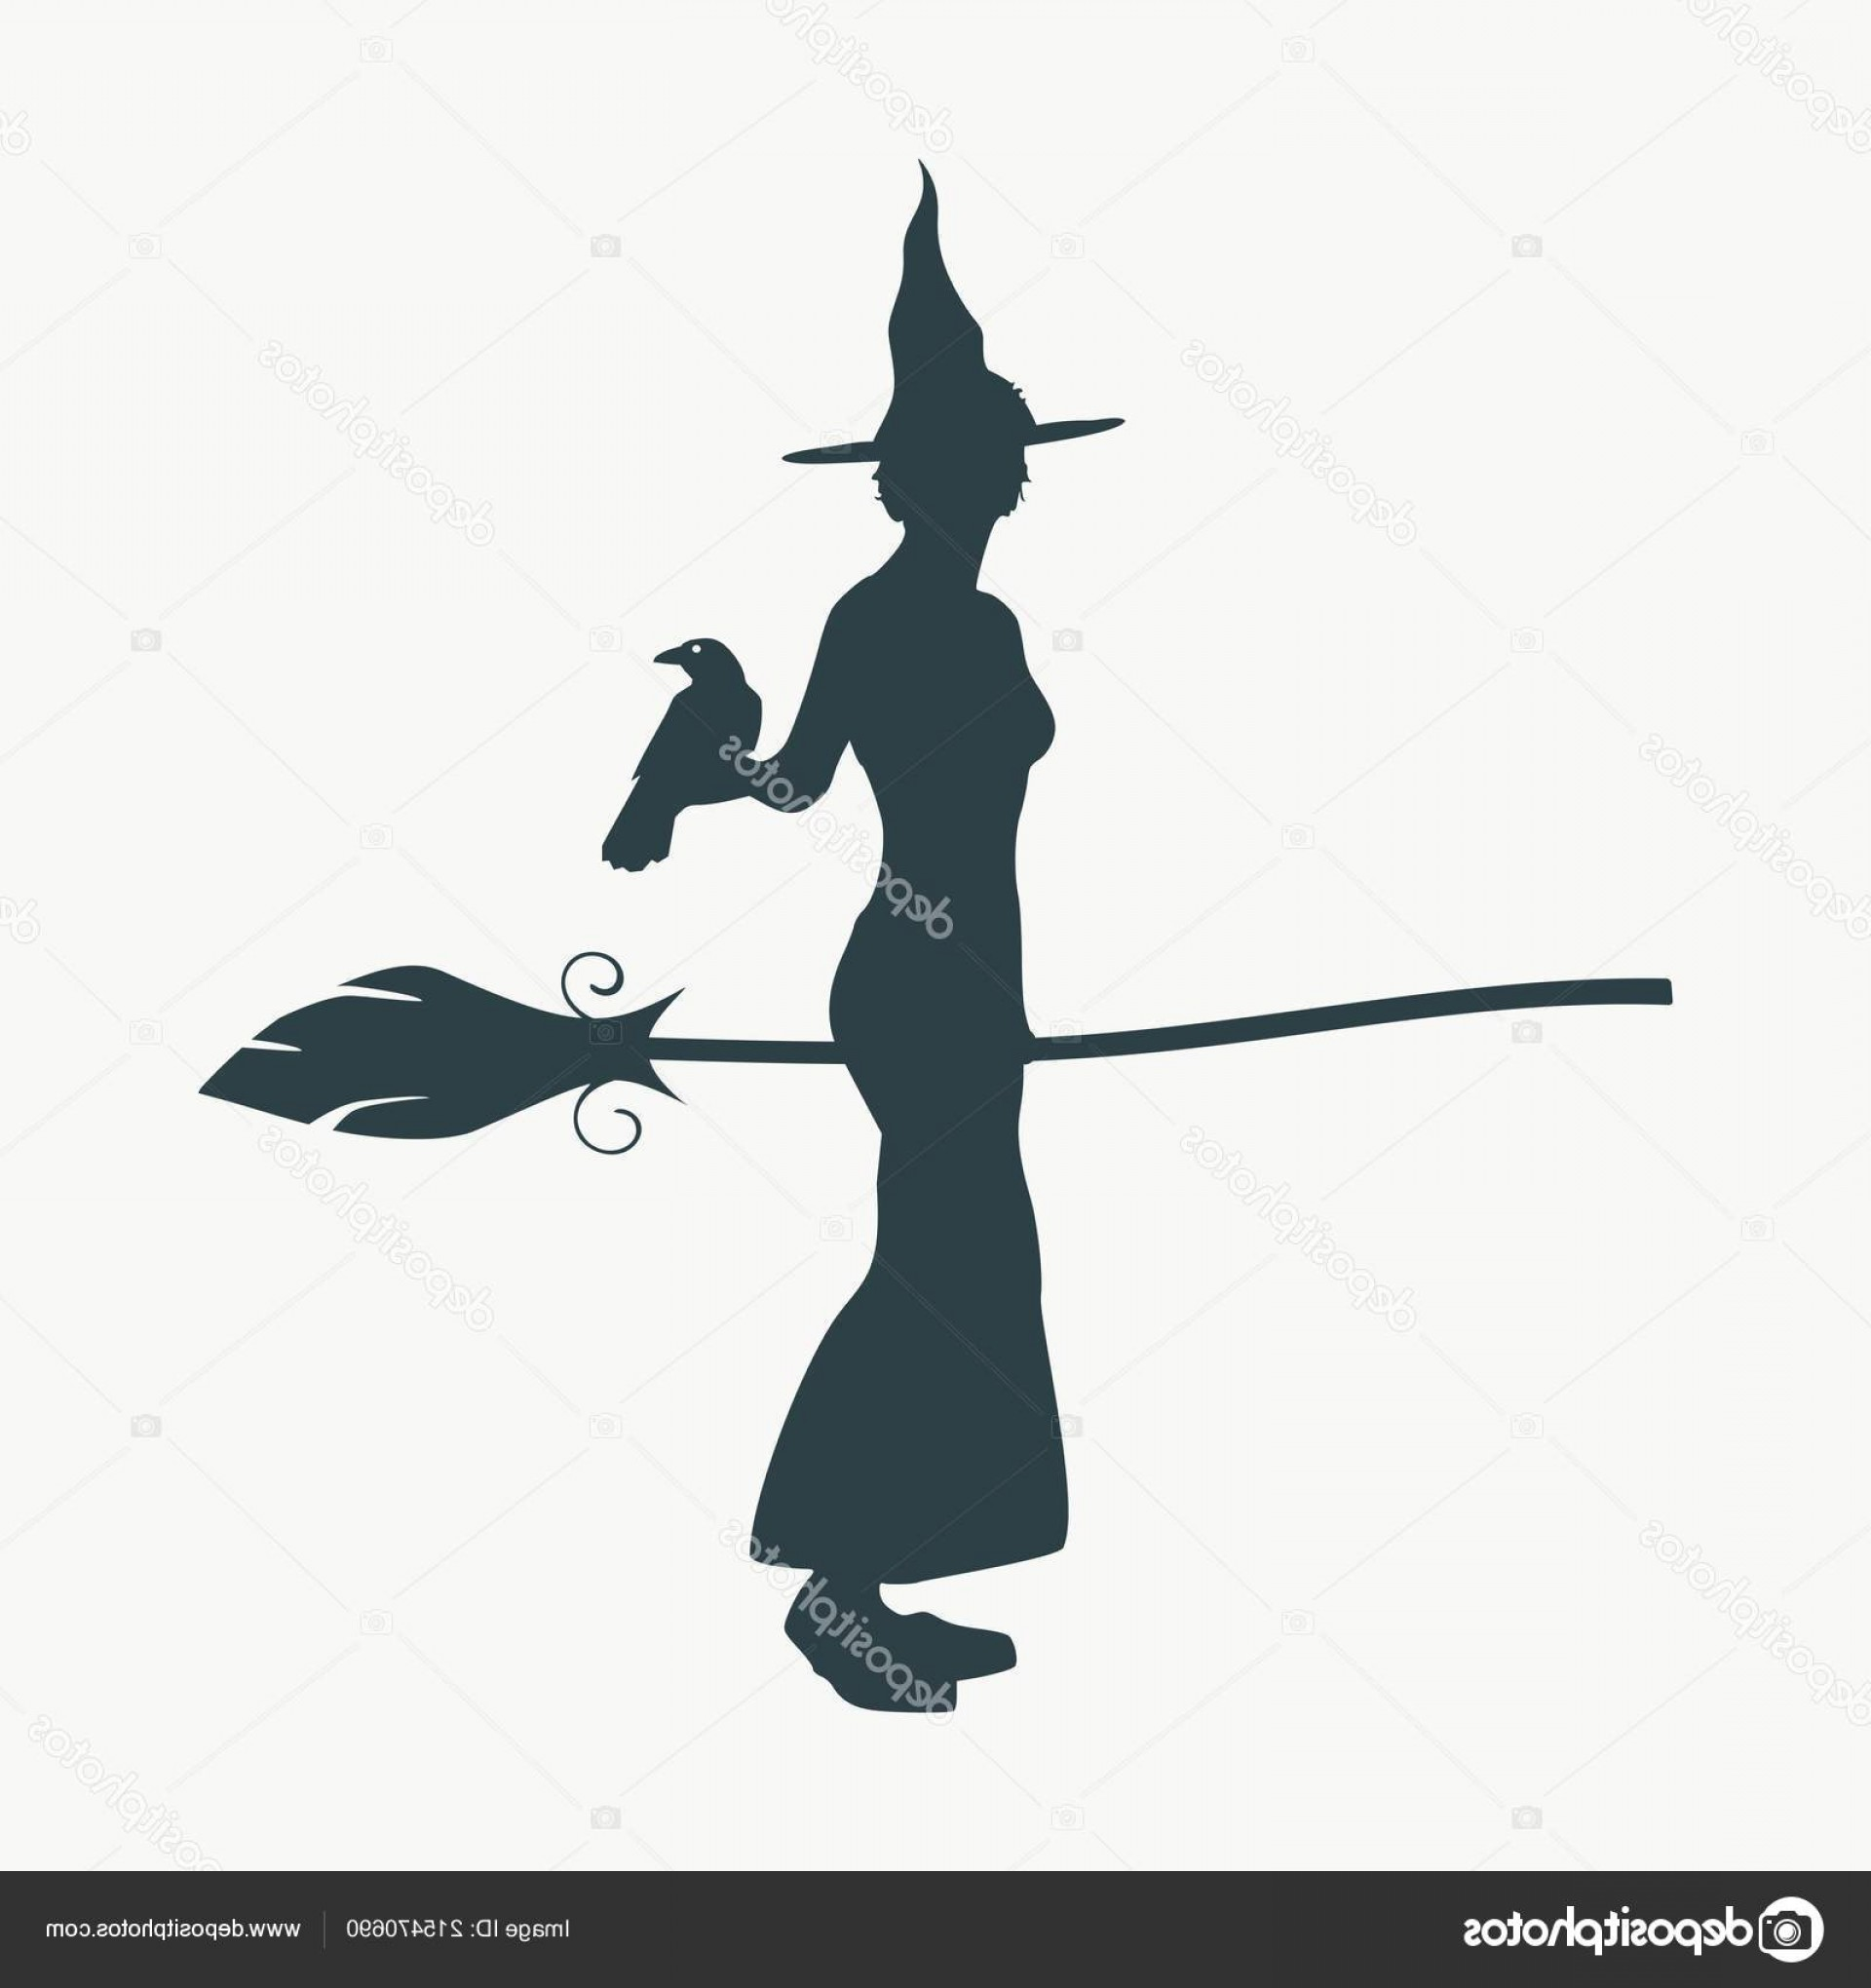 Witch Silhouette Vector: Stock Illustration Witch Silhouette With A Broomstick